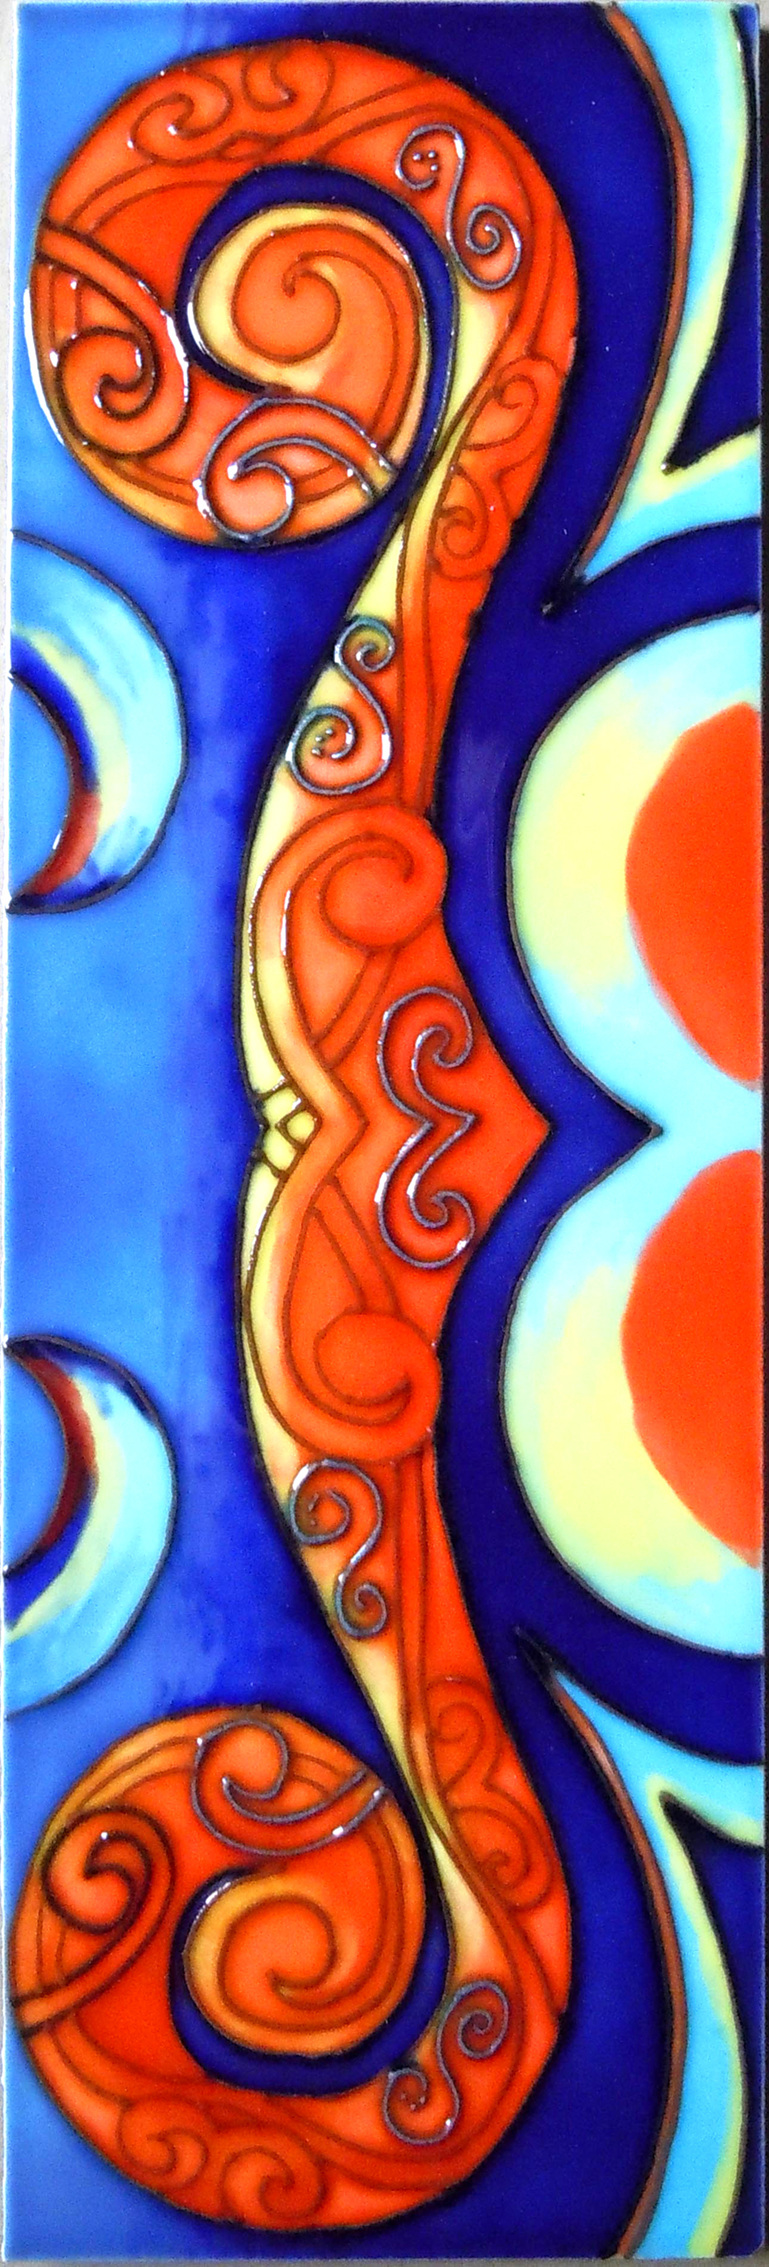 Ceramic Wall Art Reina orange CT86